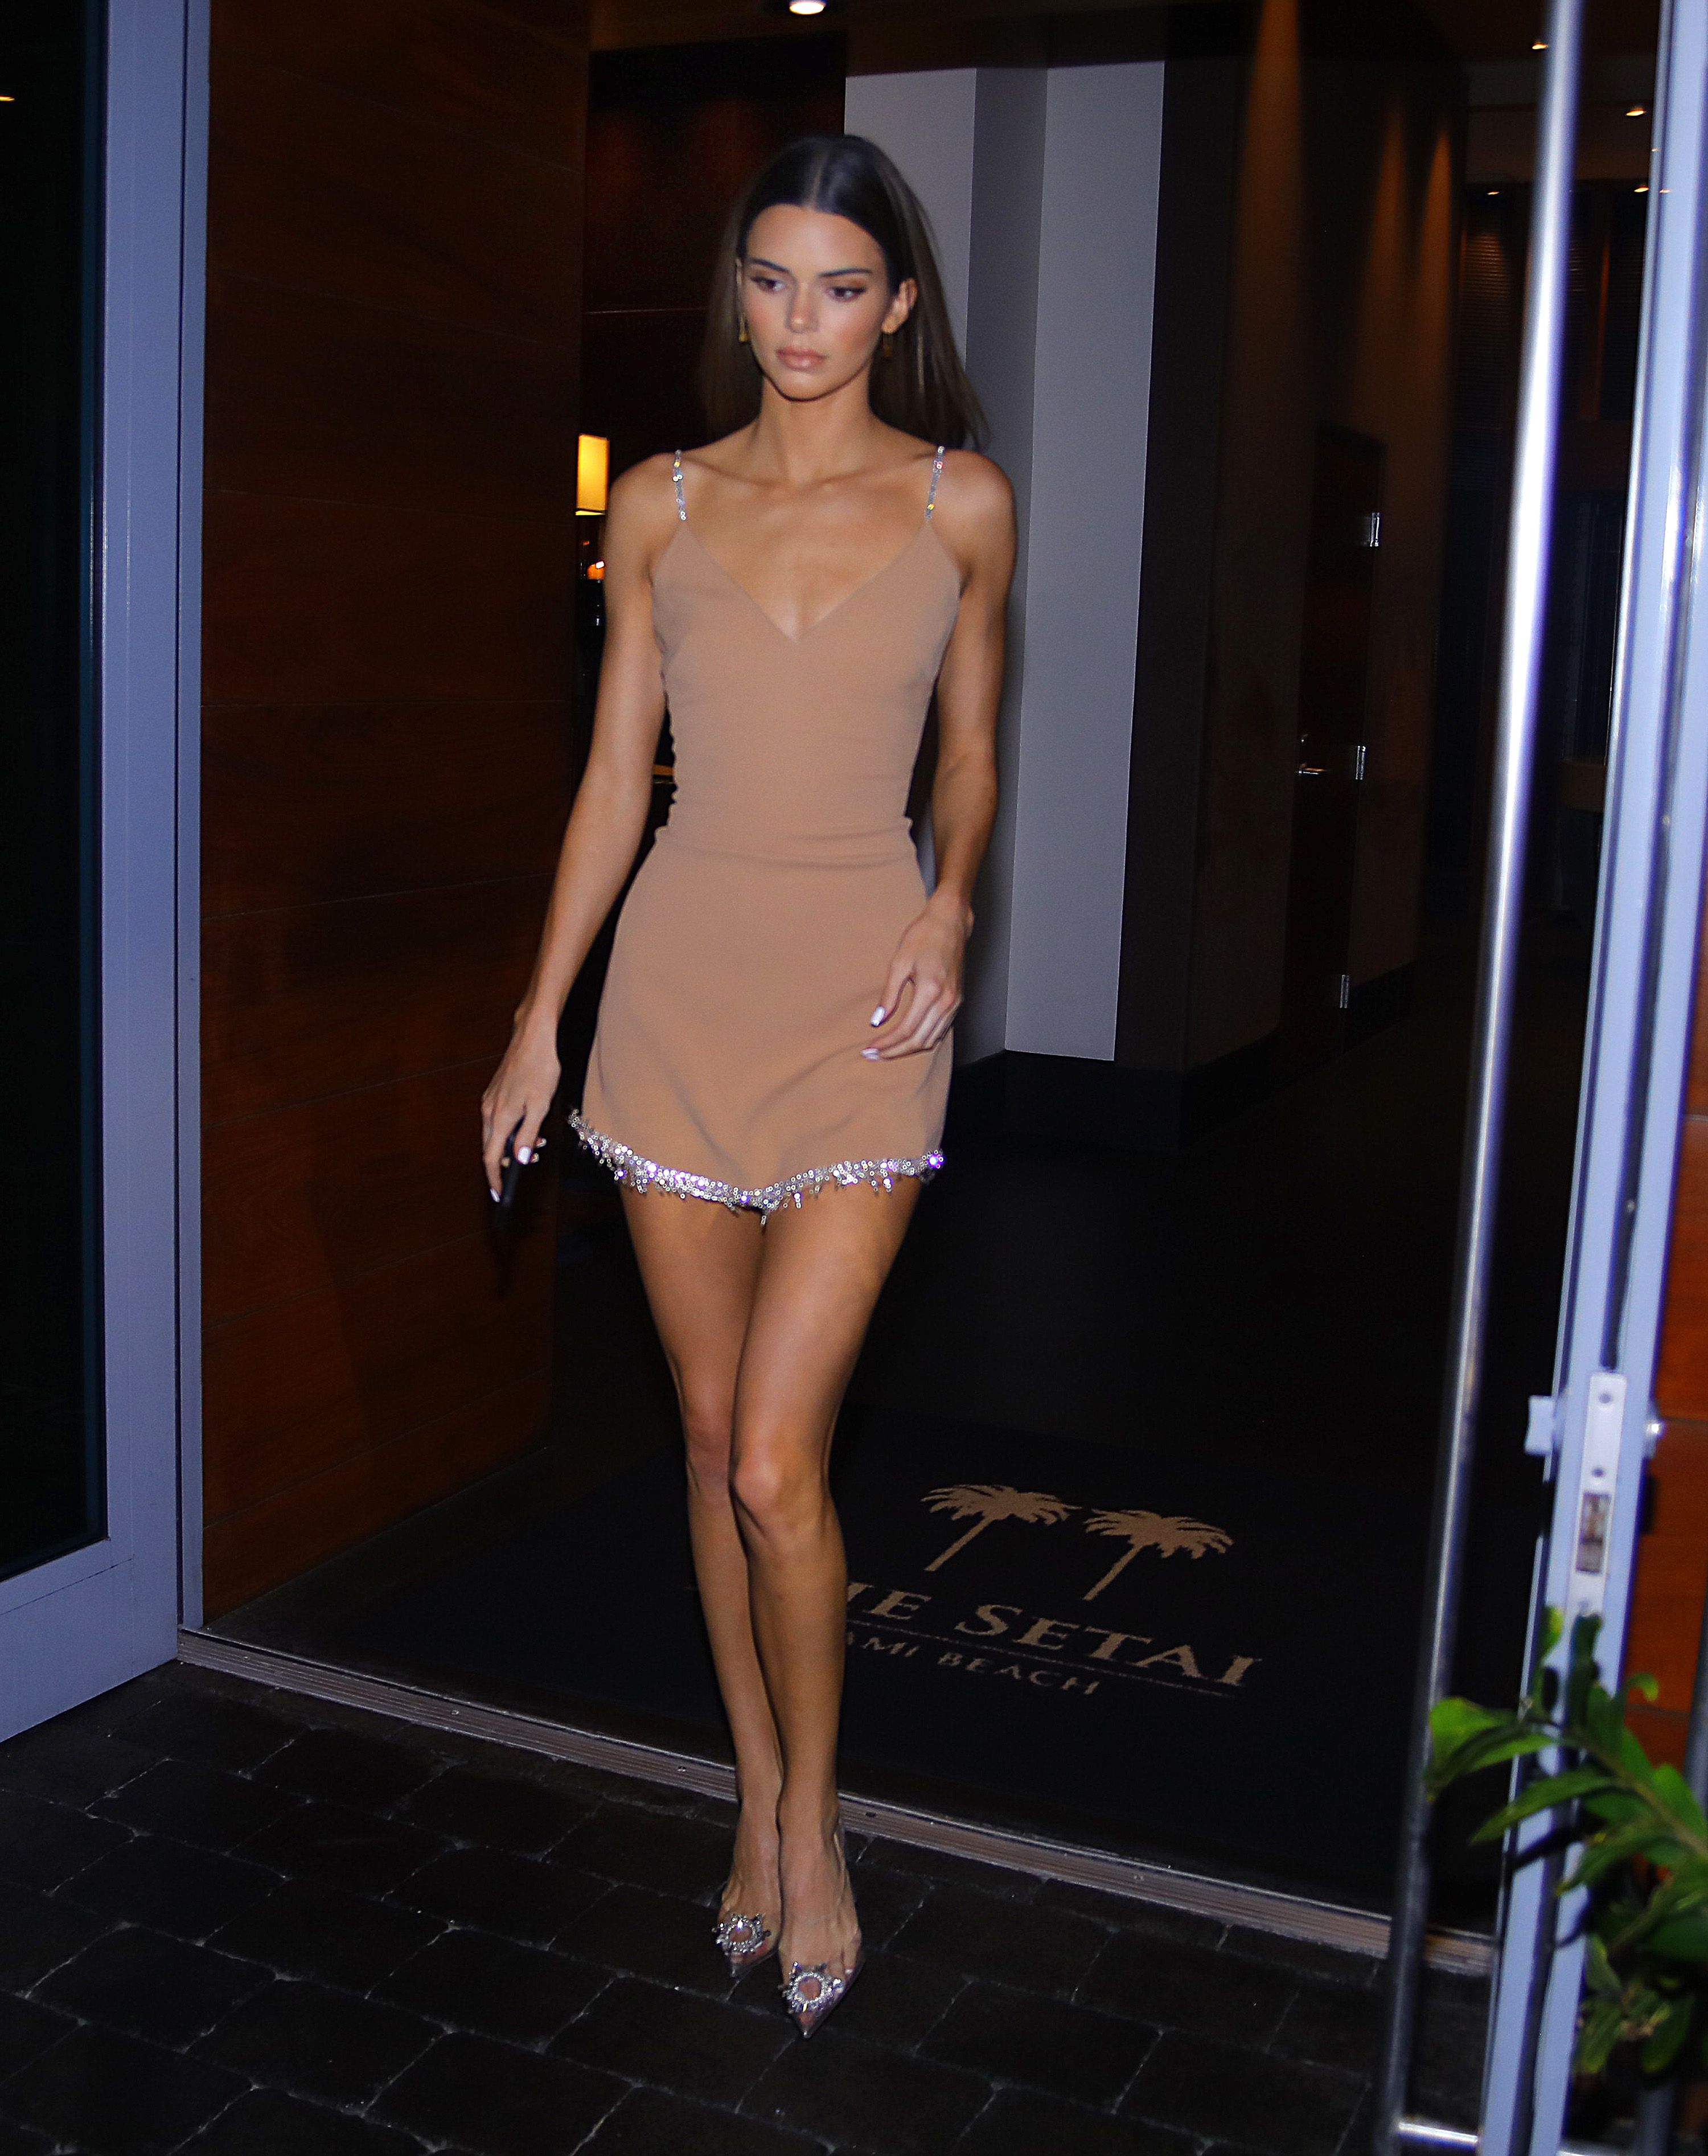 American Gladiators Naked kendall jenner just stepped out in a nude david koma dress